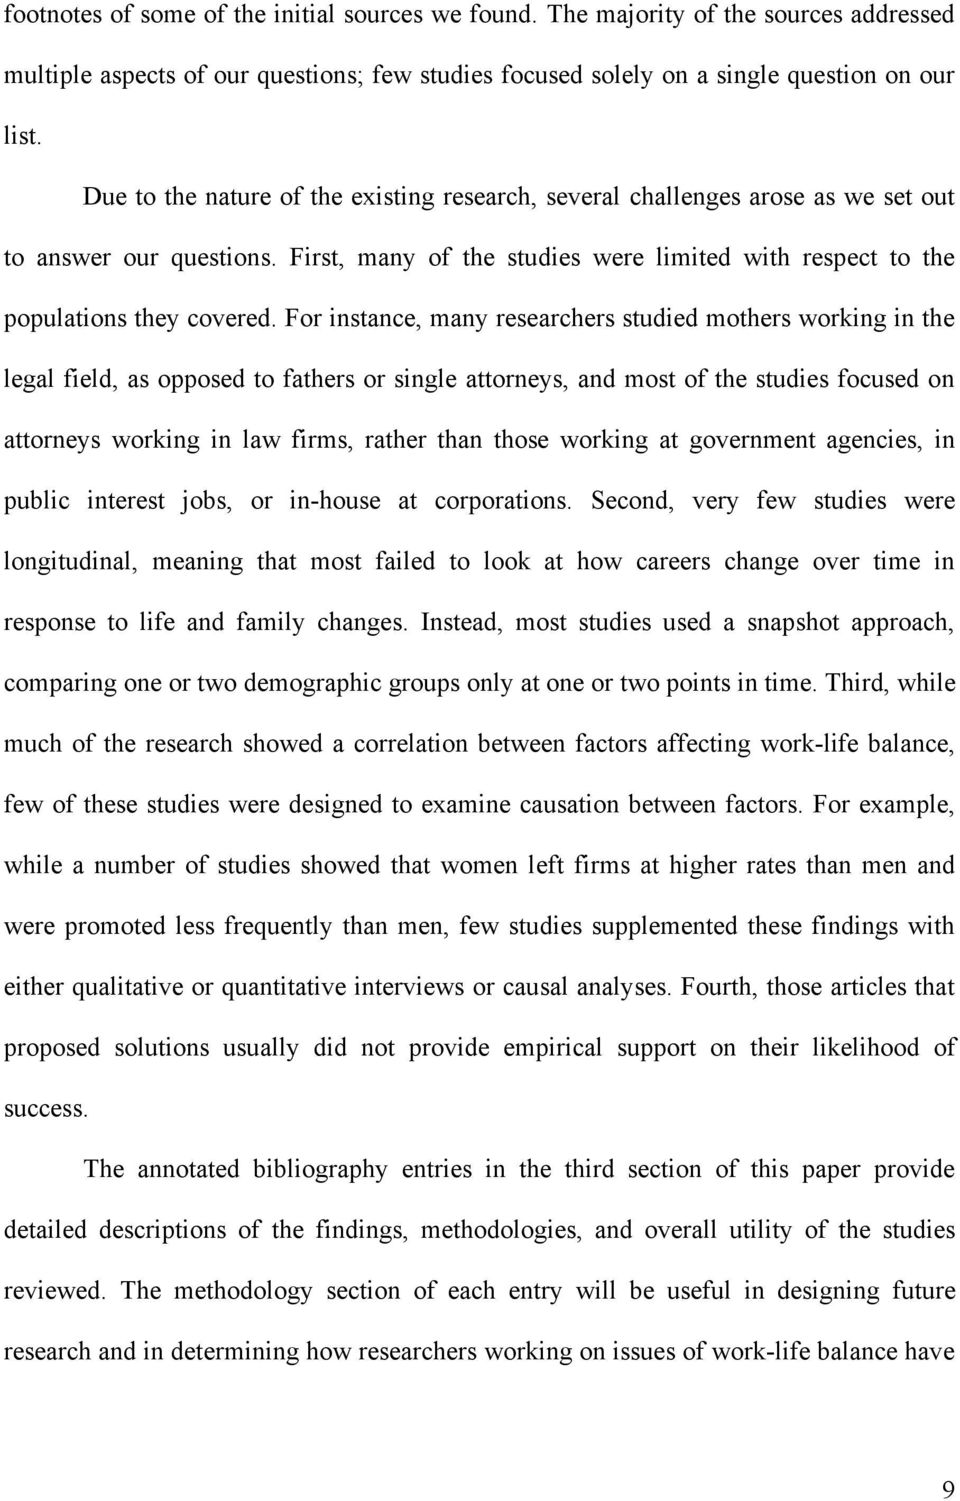 For instance, many researchers studied mothers working in the legal field, as opposed to fathers or single attorneys, and most of the studies focused on attorneys working in law firms, rather than